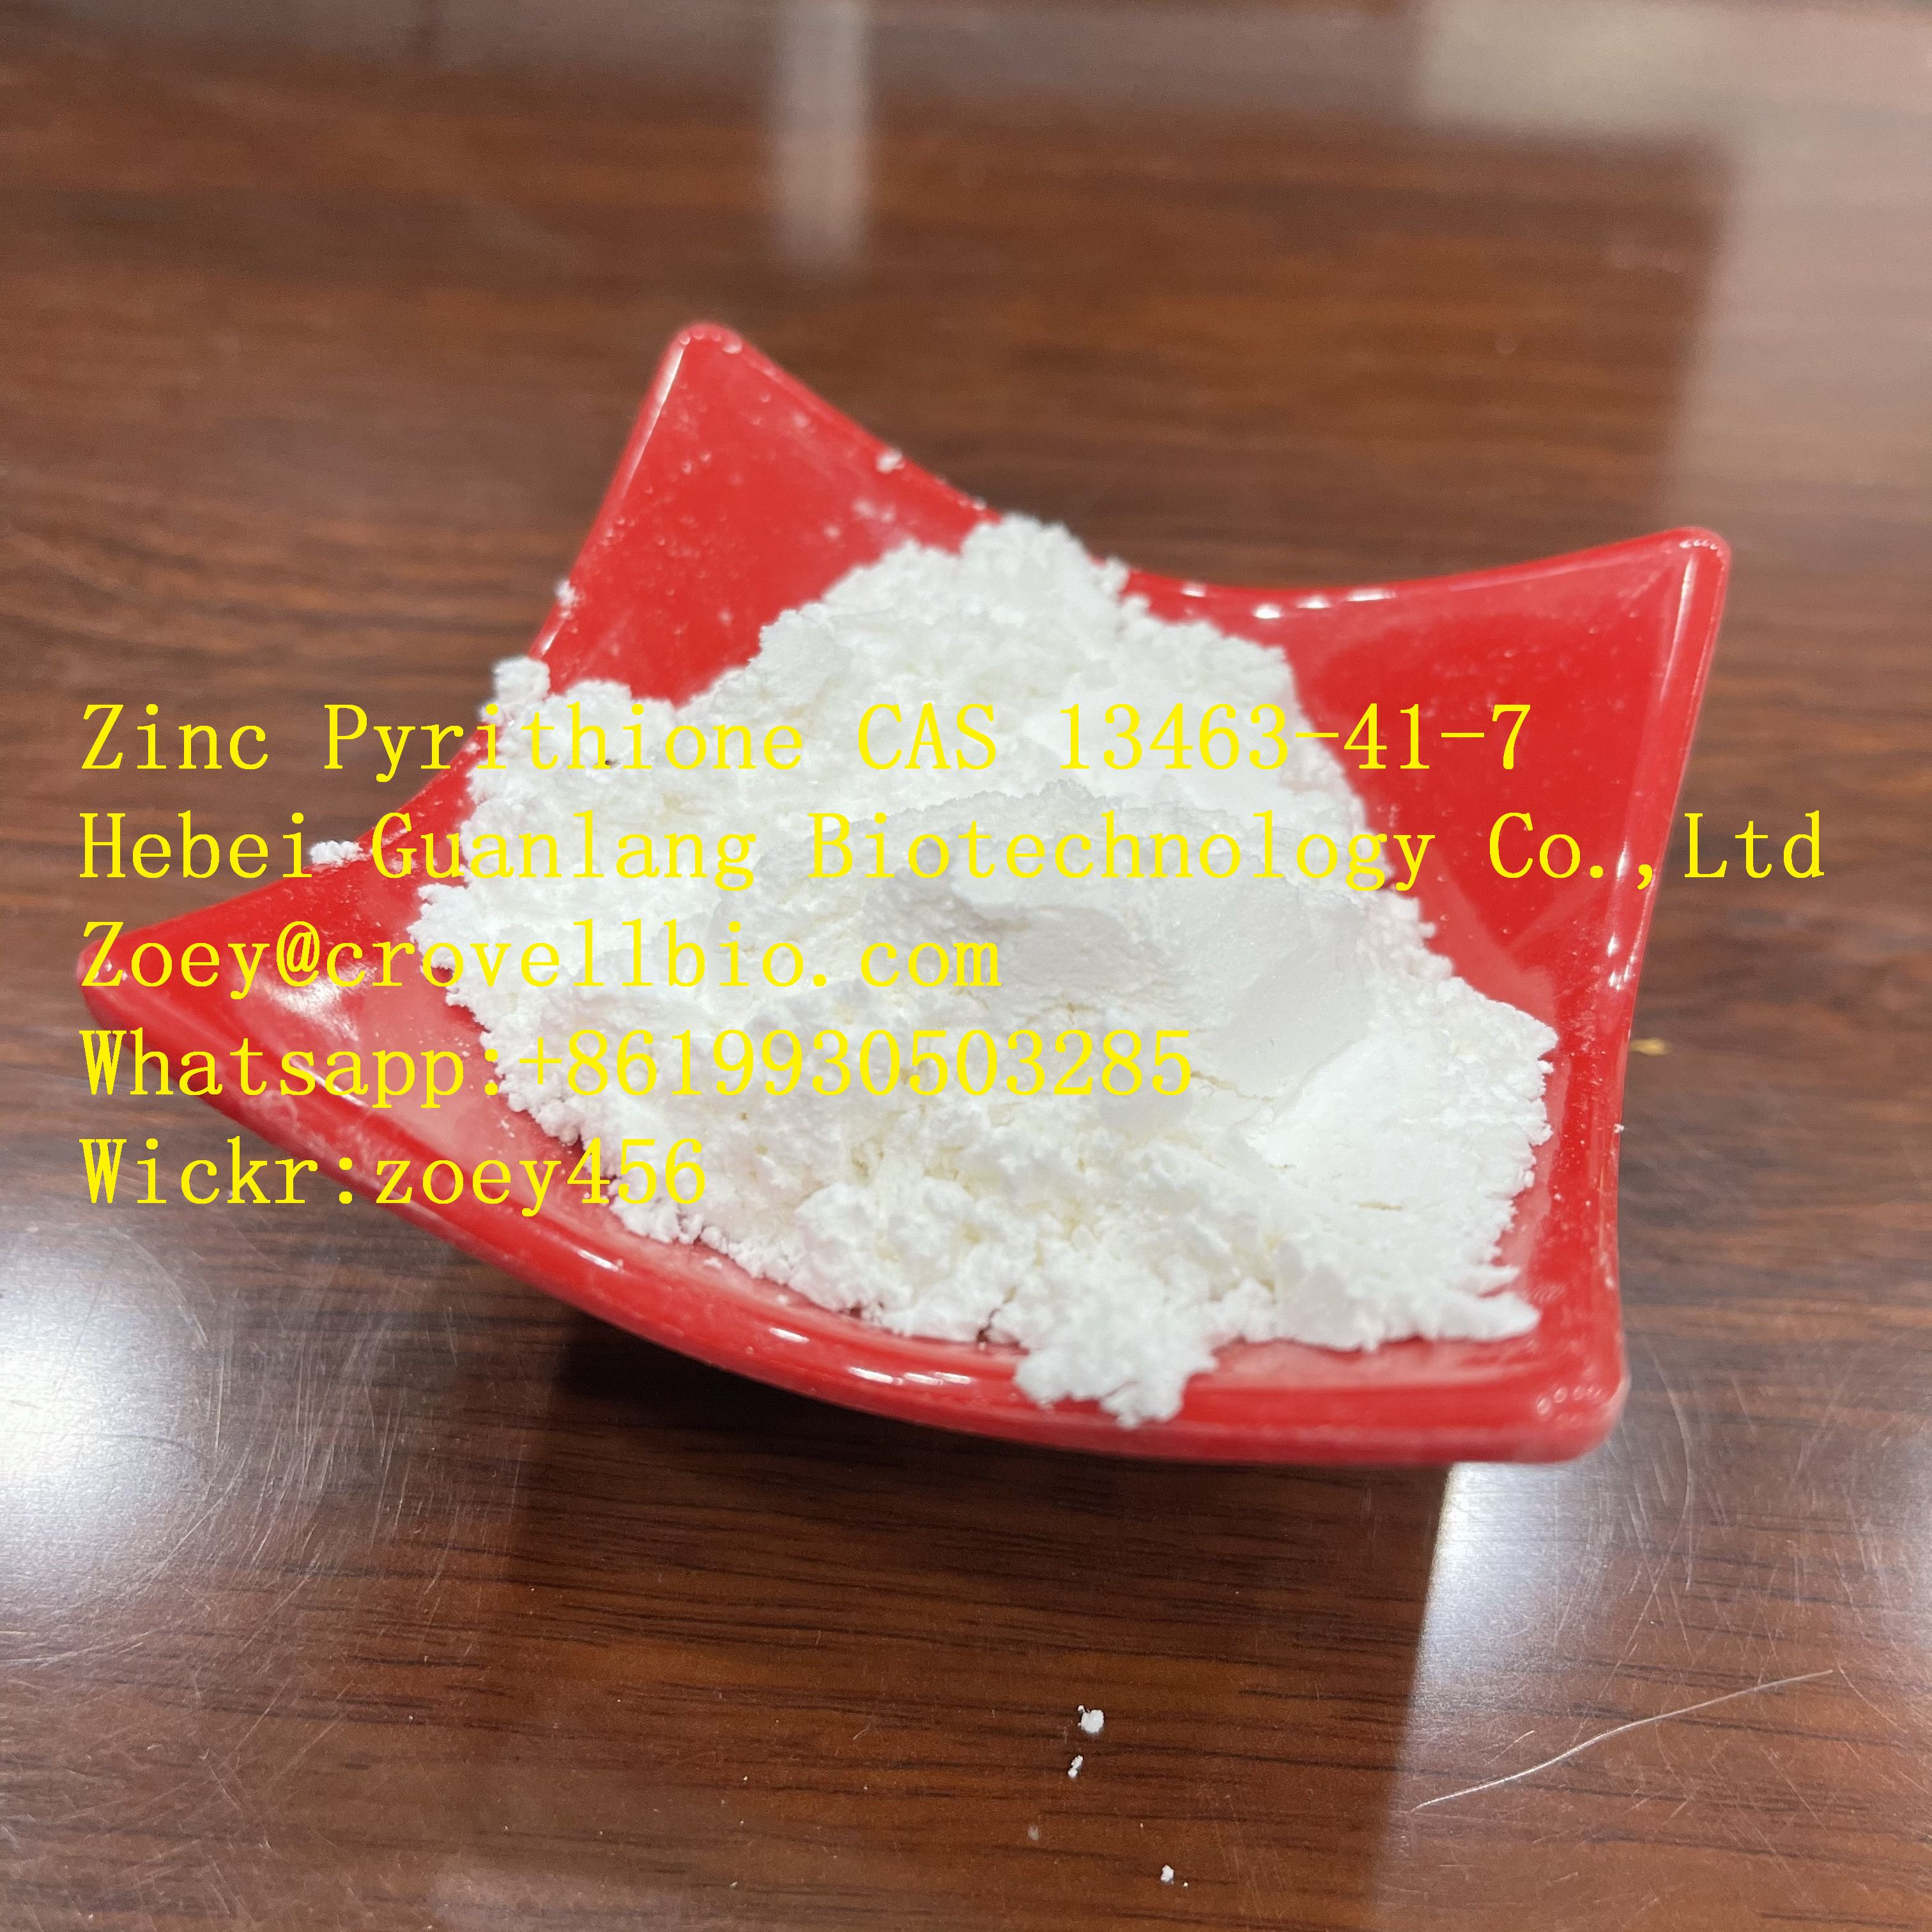 China ZPT supplier CAS 13463-41-7 with low price zoey@crovellbio.com